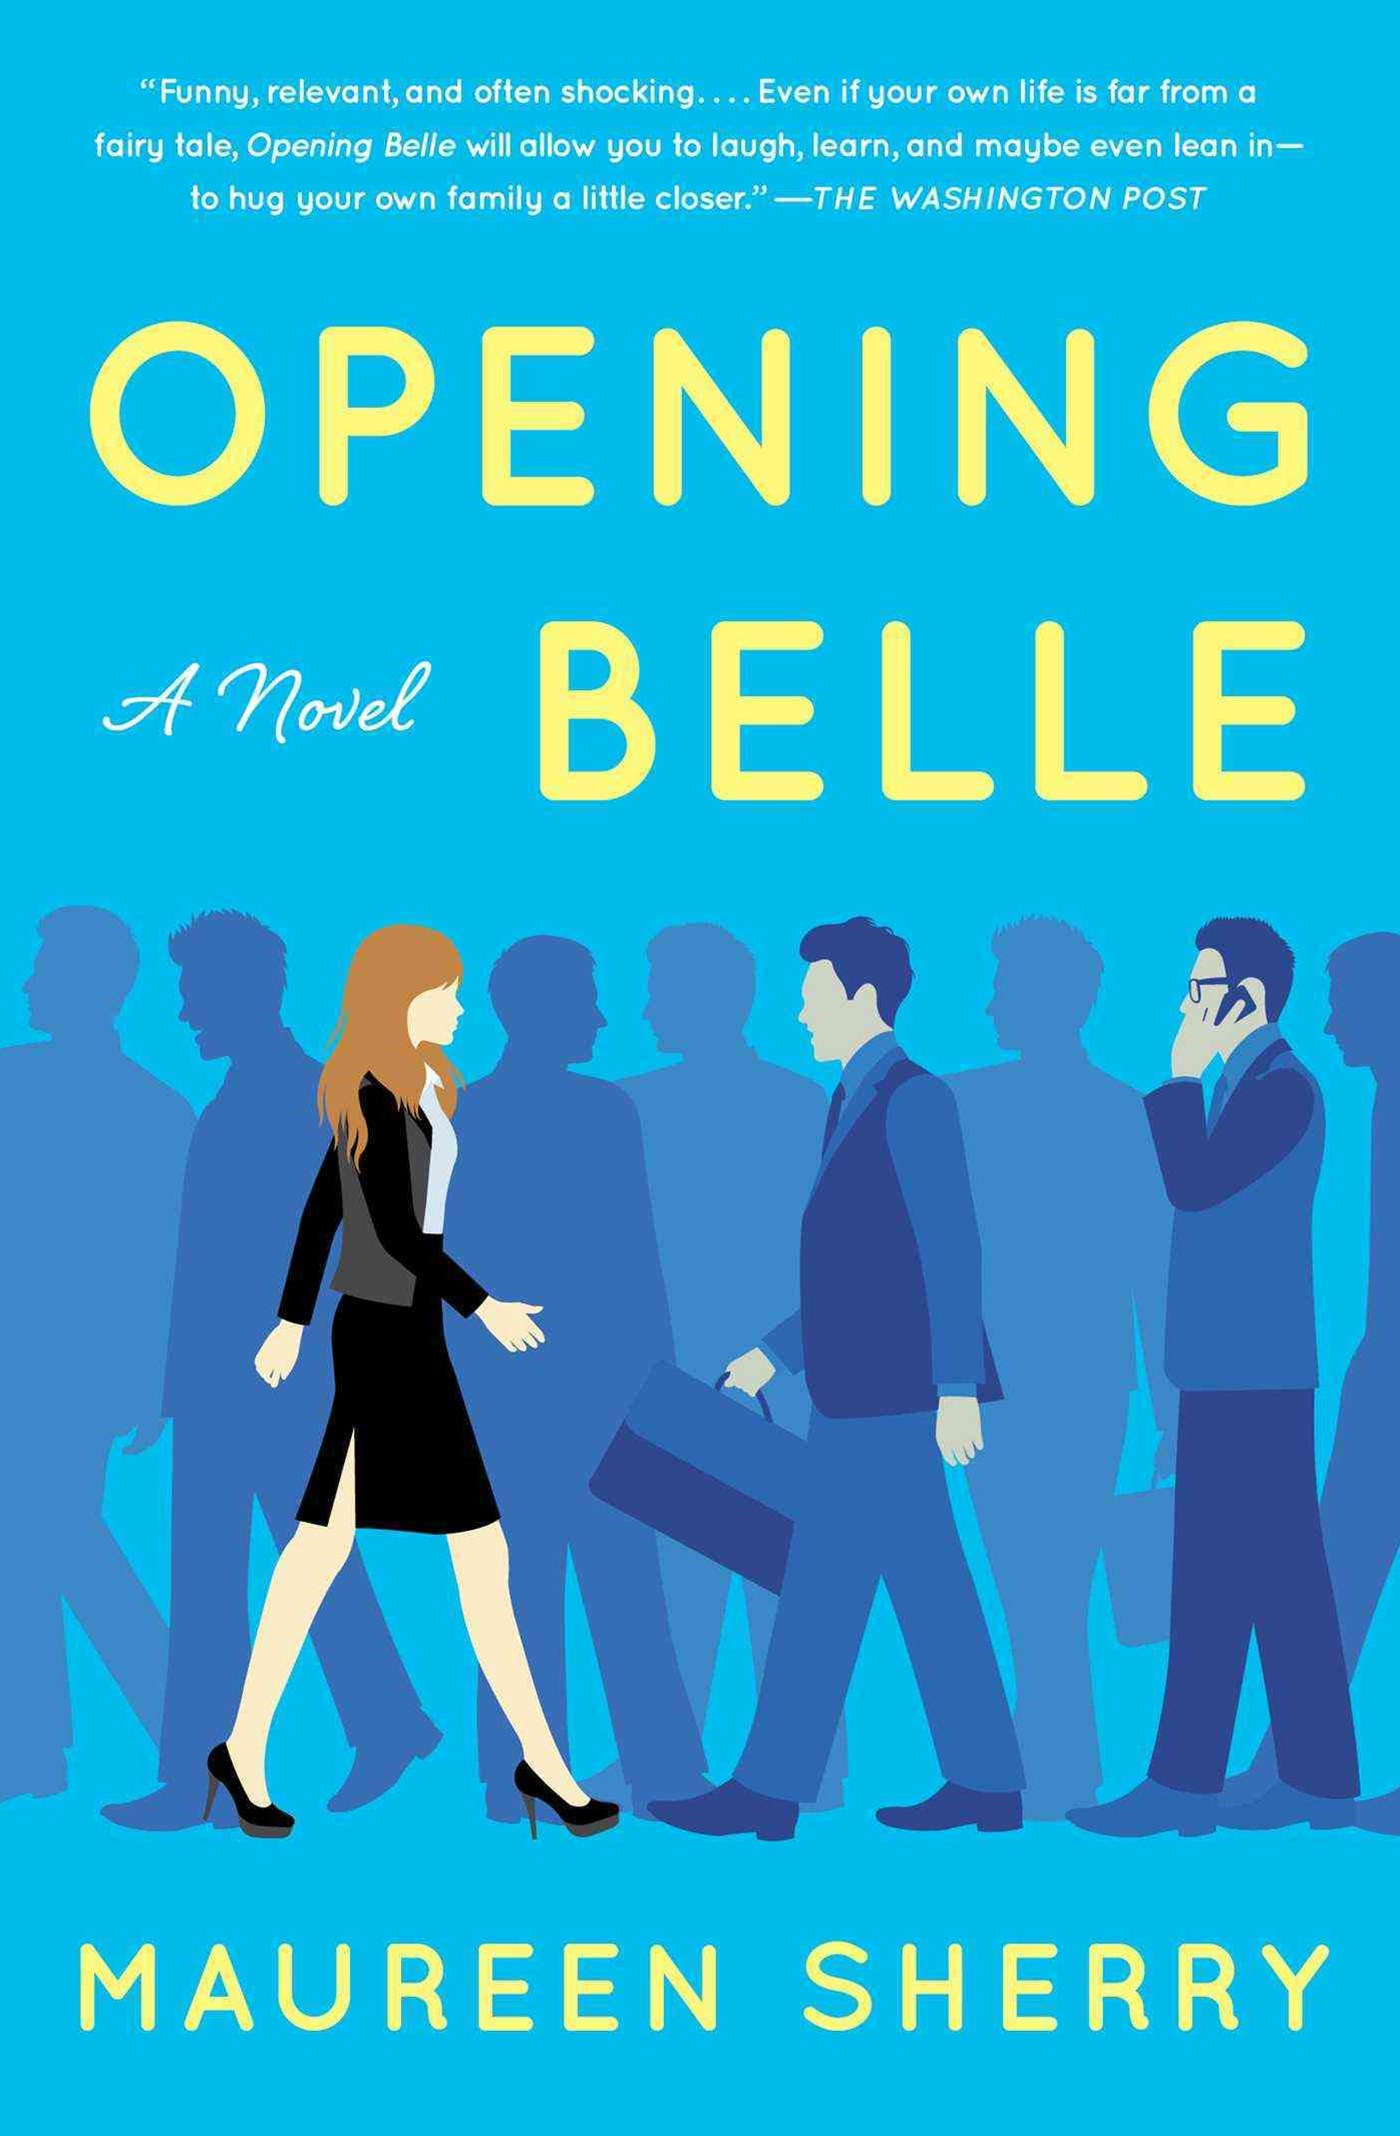 Opening Belle